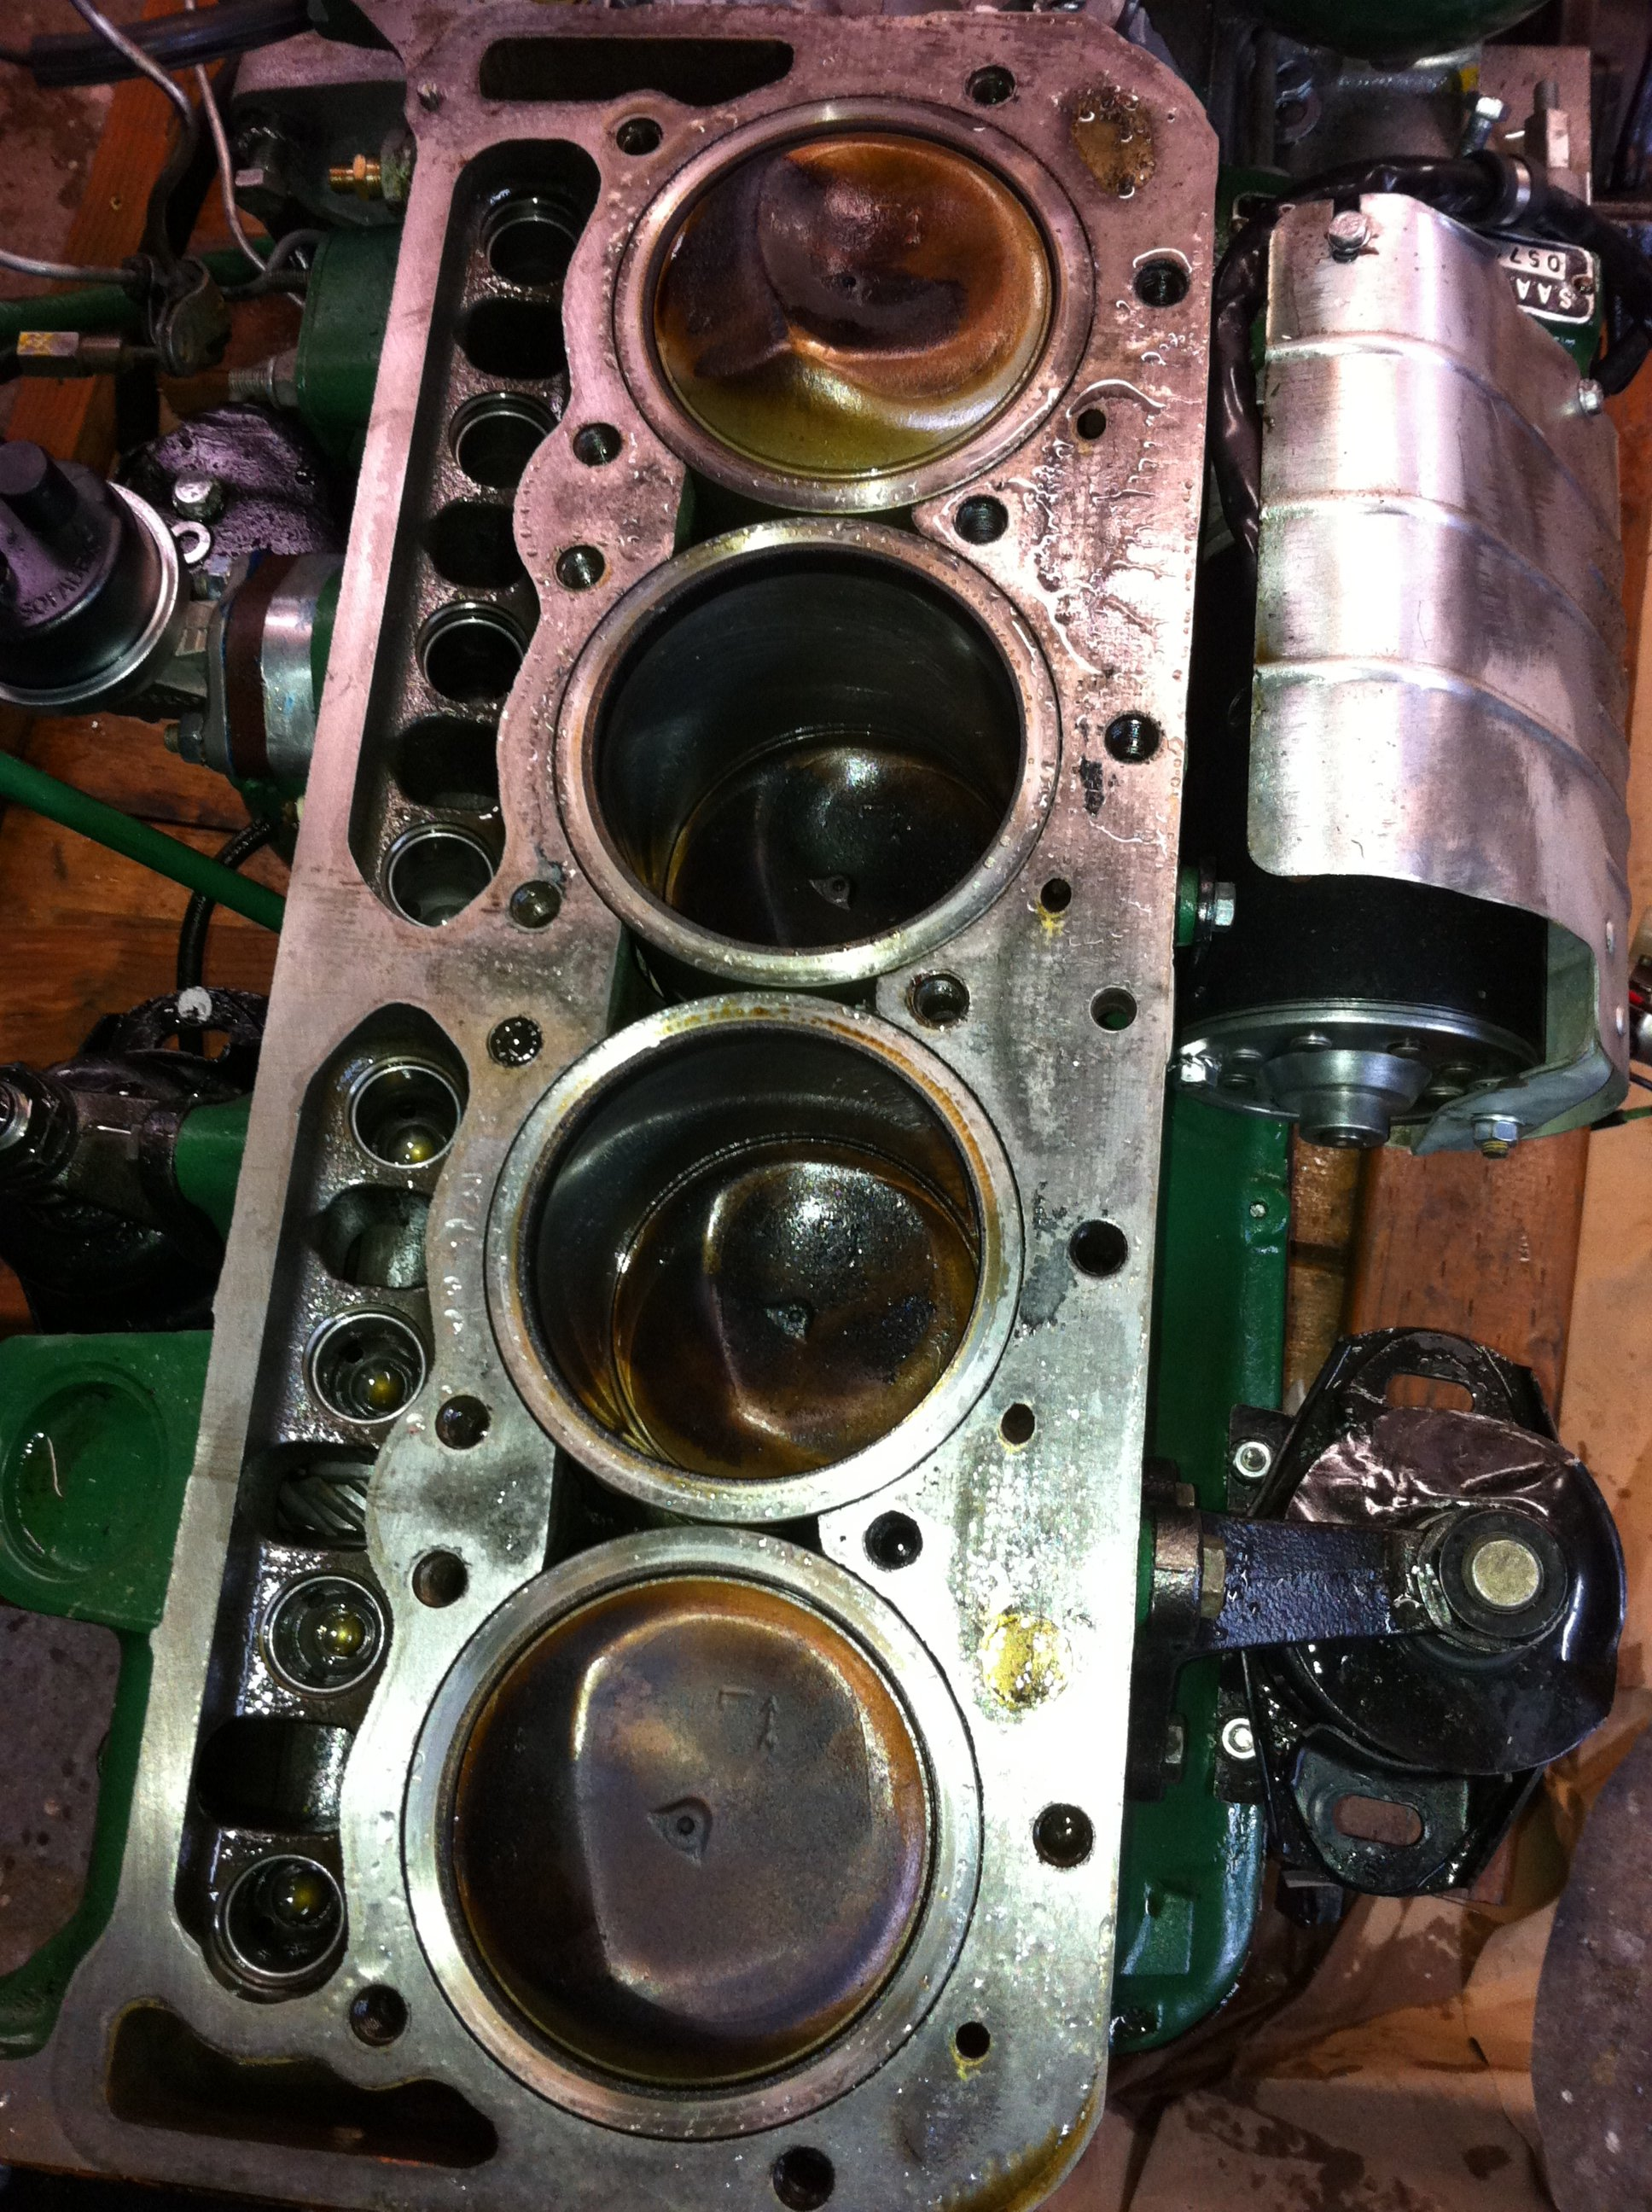 Head and head gasket look very good, pistons are coated with oil - not good